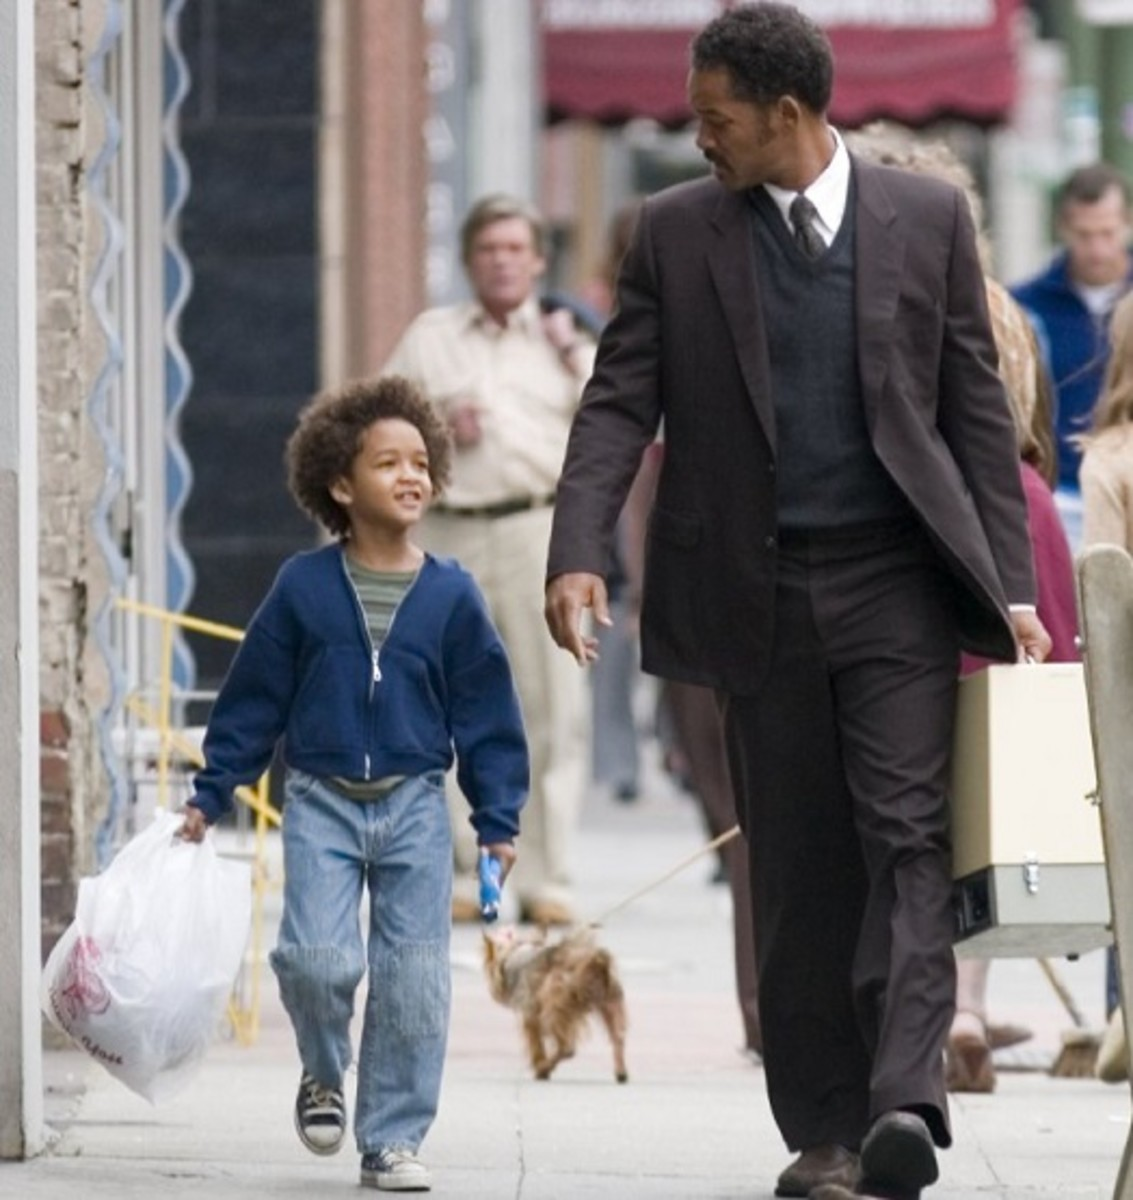 Will Smith and Jaden Smith in the pursuit of happyness.